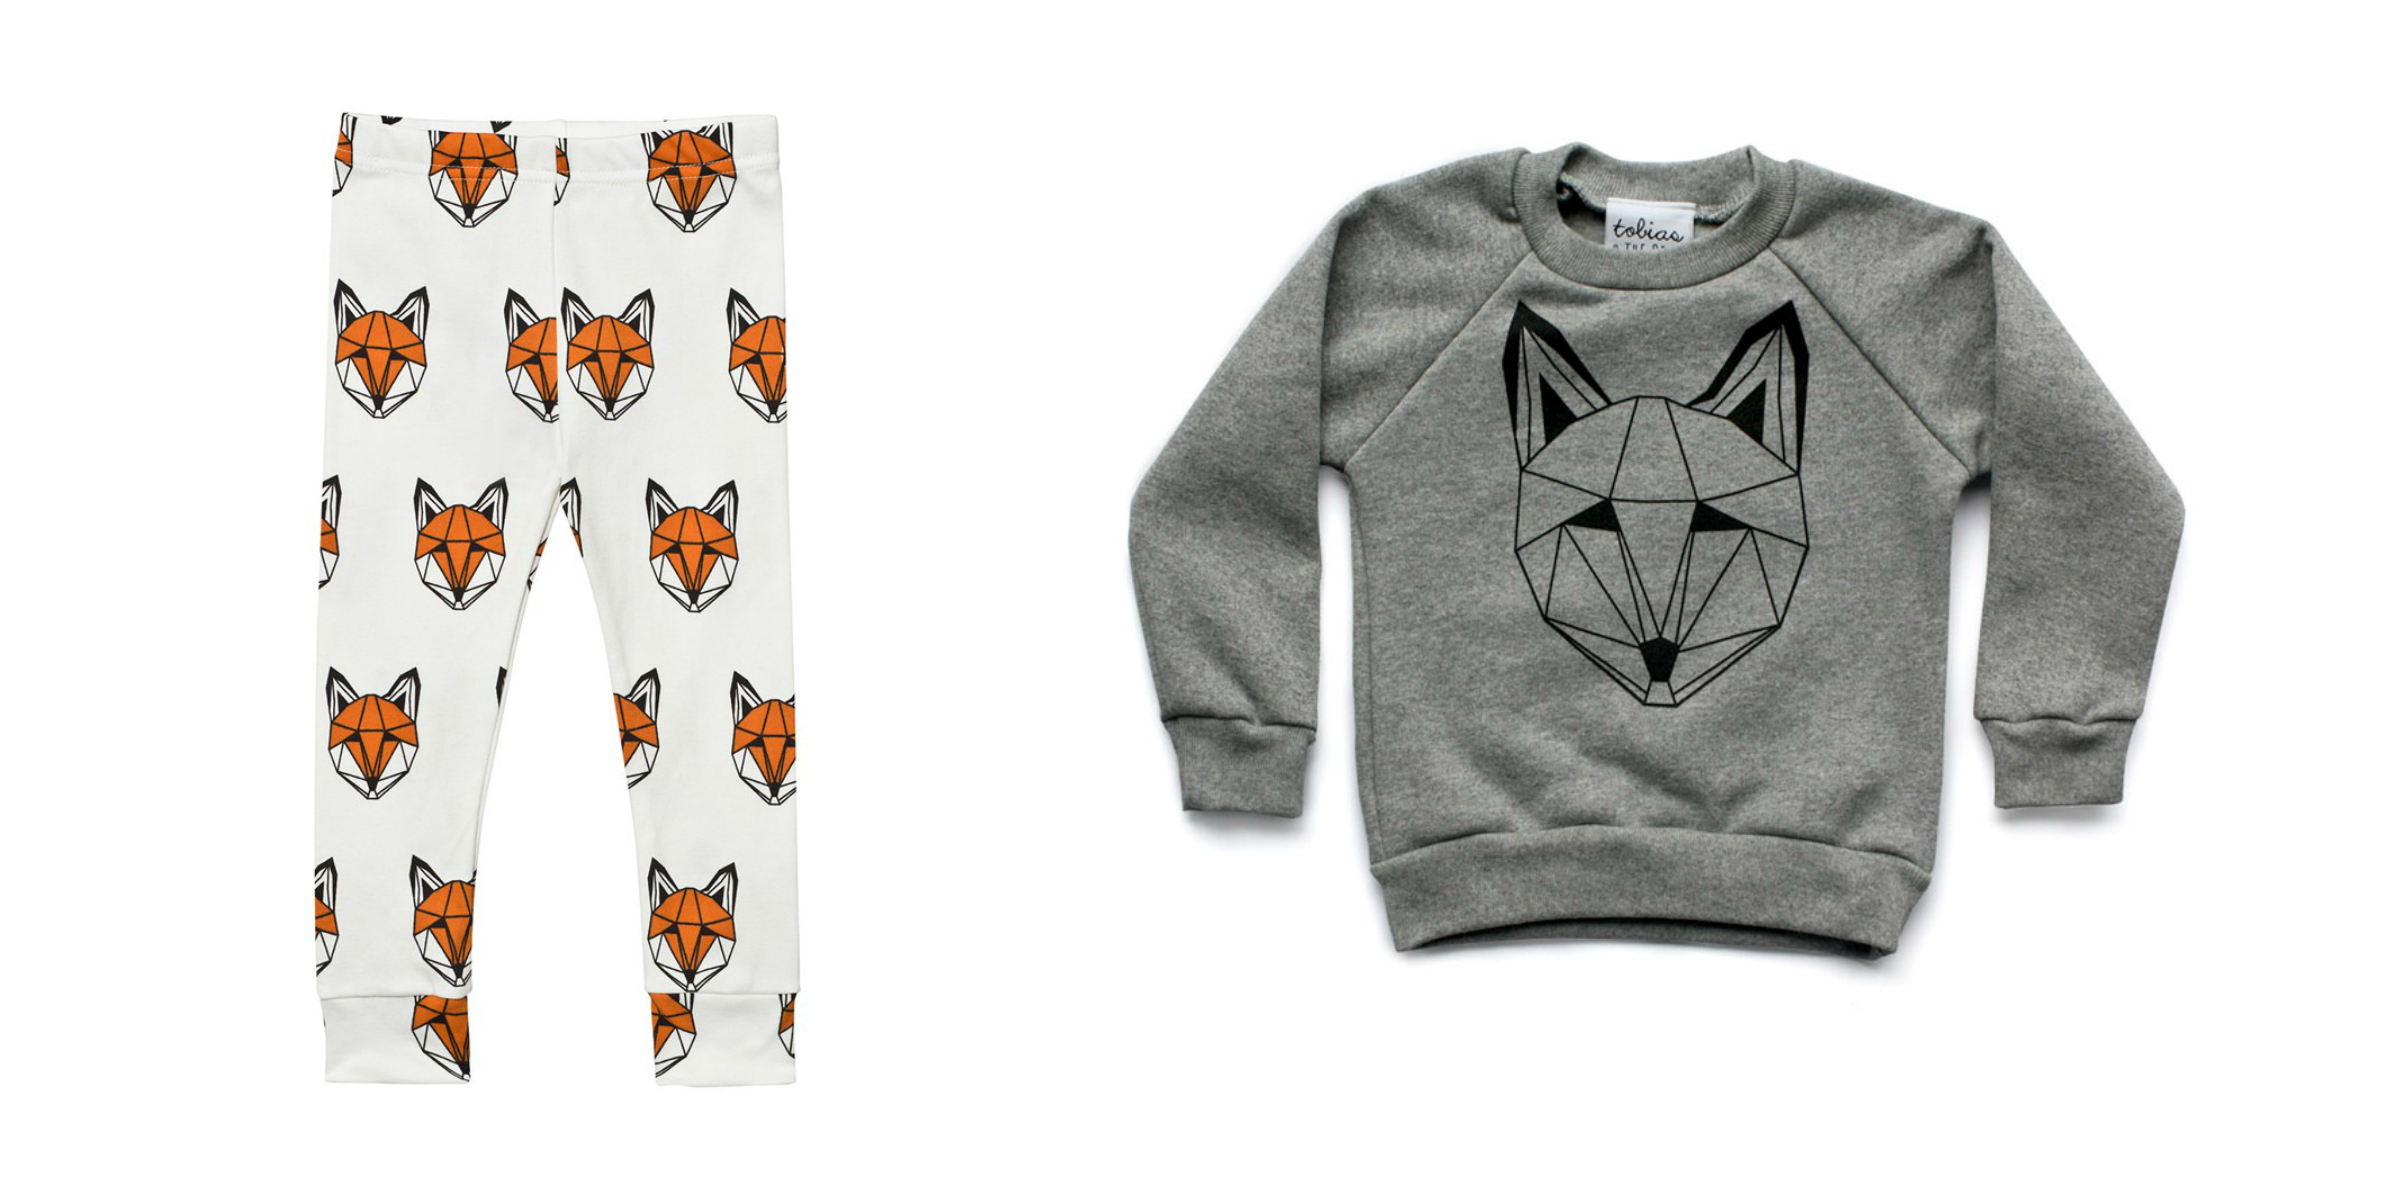 Fox Leggings for Kid's Back To School Waredrobe